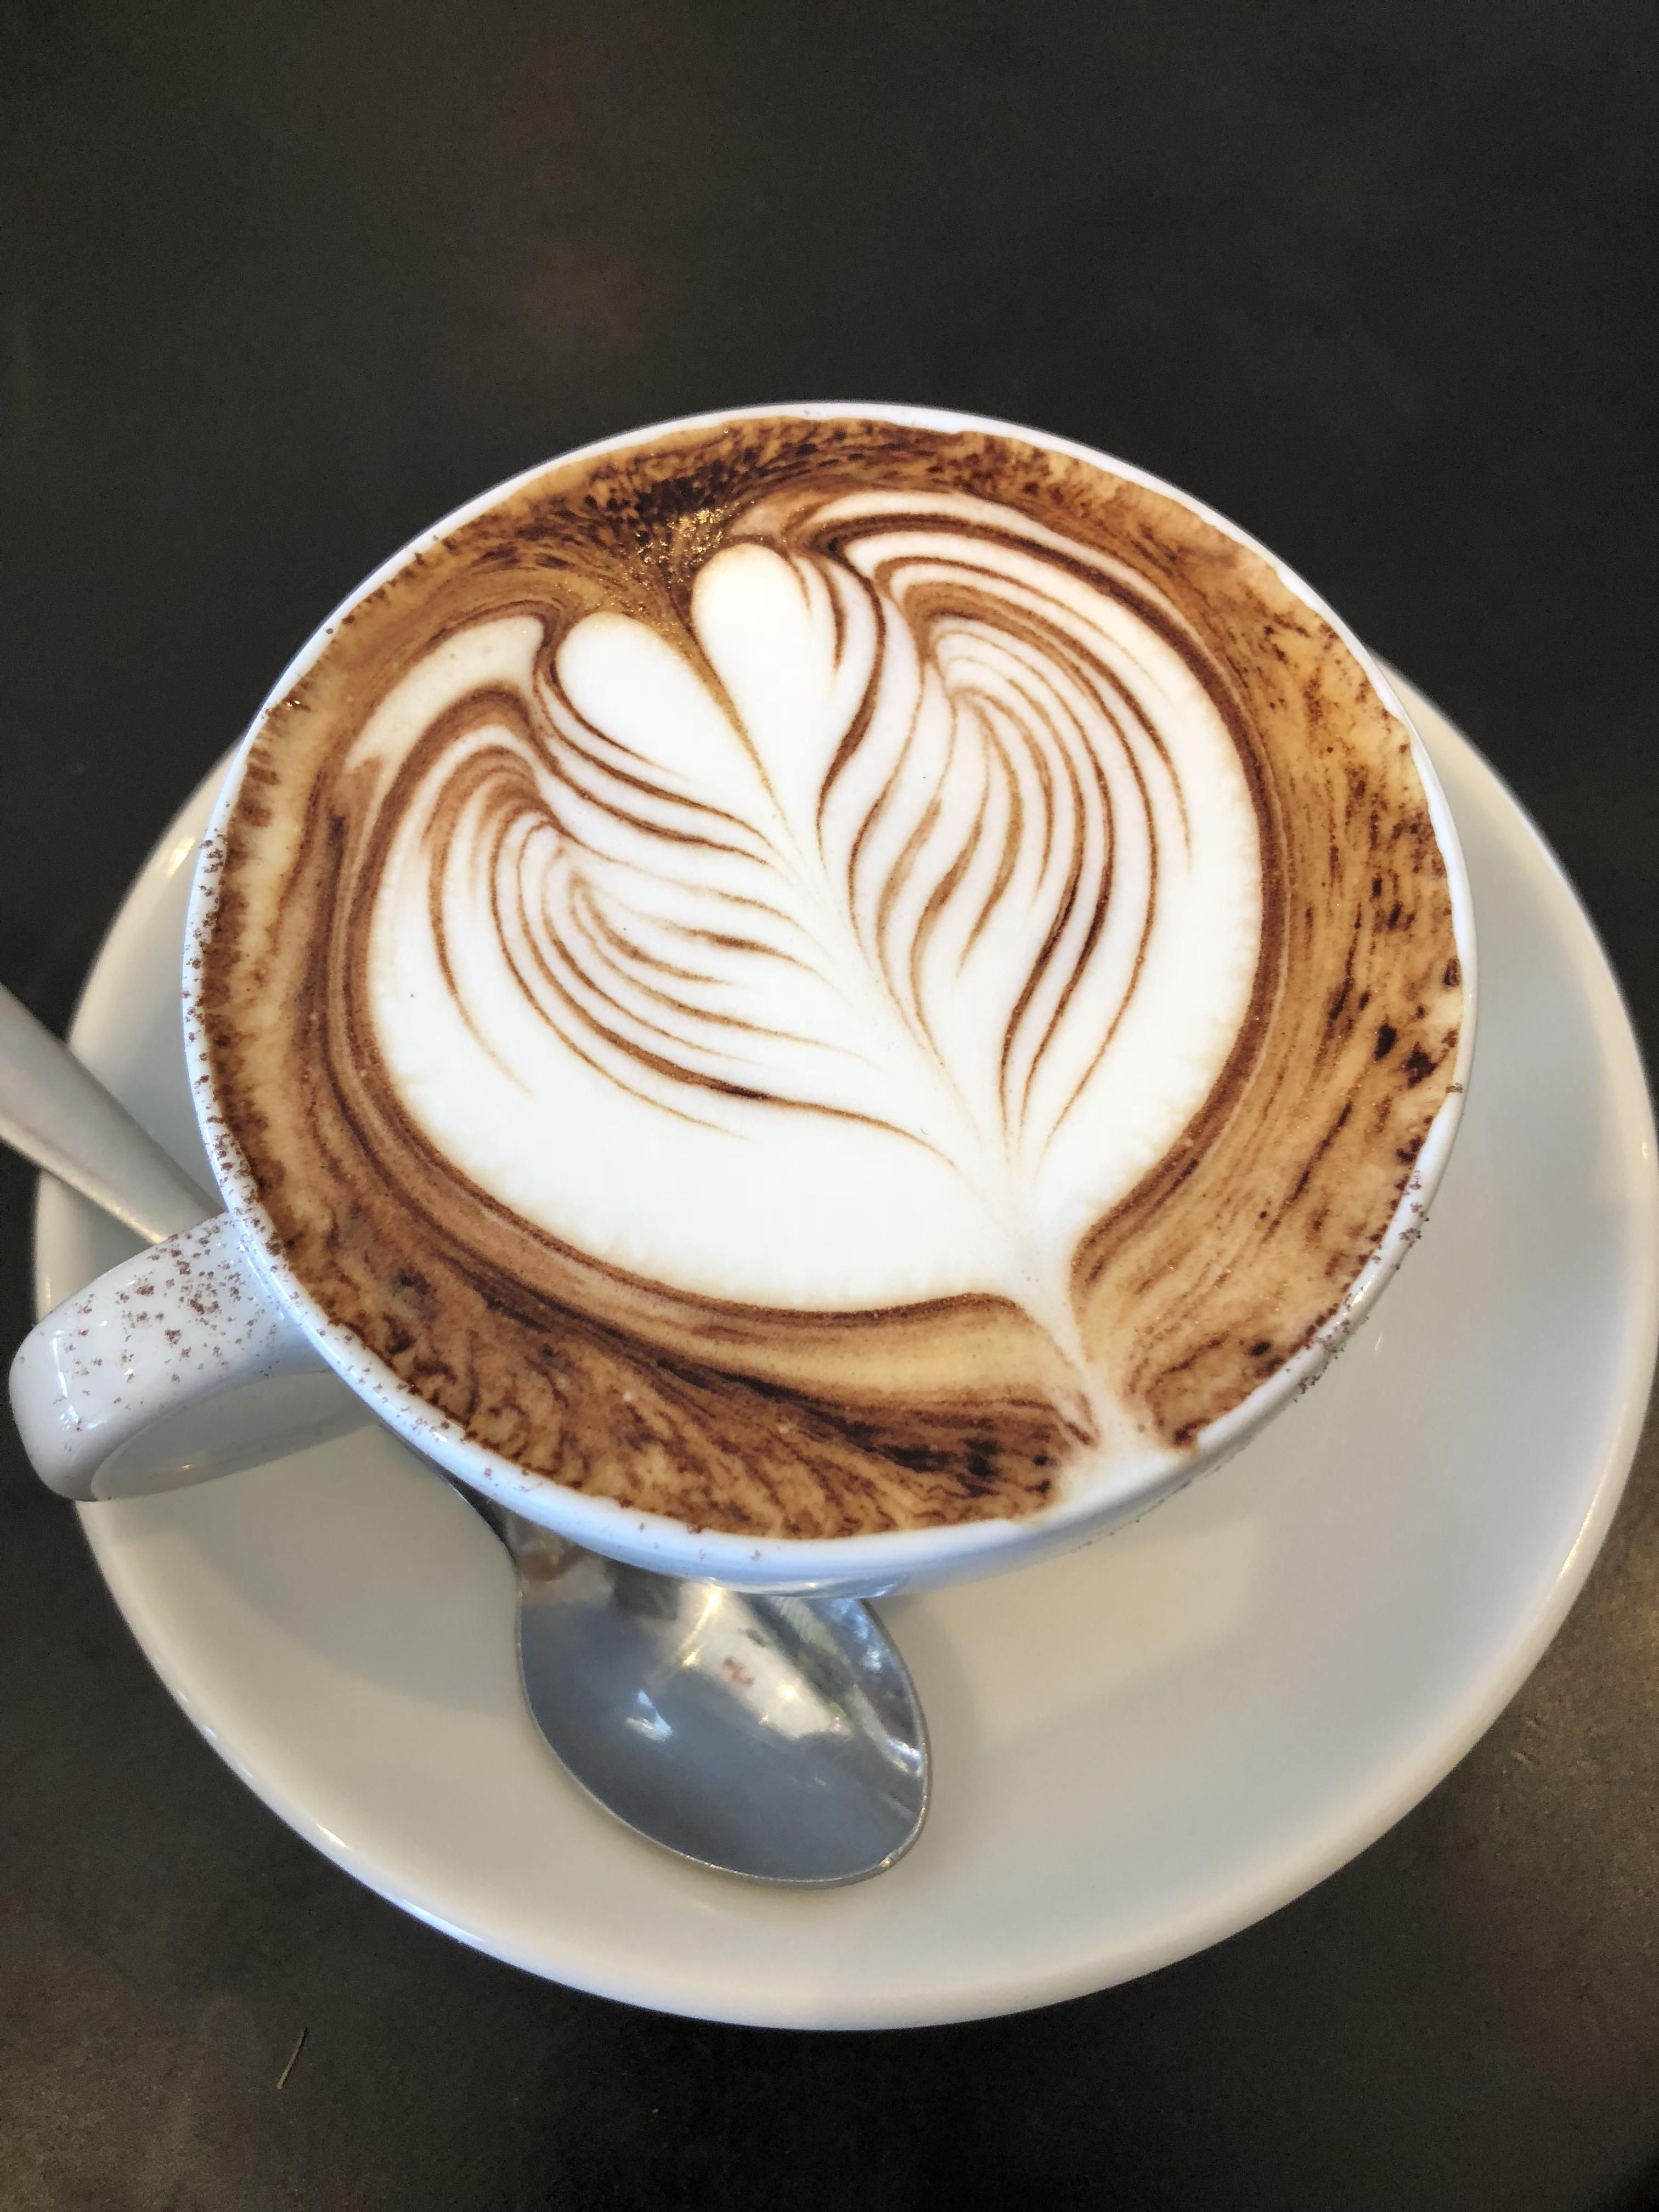 I Just Love Making Cappuccinos Coffee Cafe Espresso Photography Coffeeaddict Yummy Barista Gourmet Coffee Cappuccino Coffee Coffee Roasting